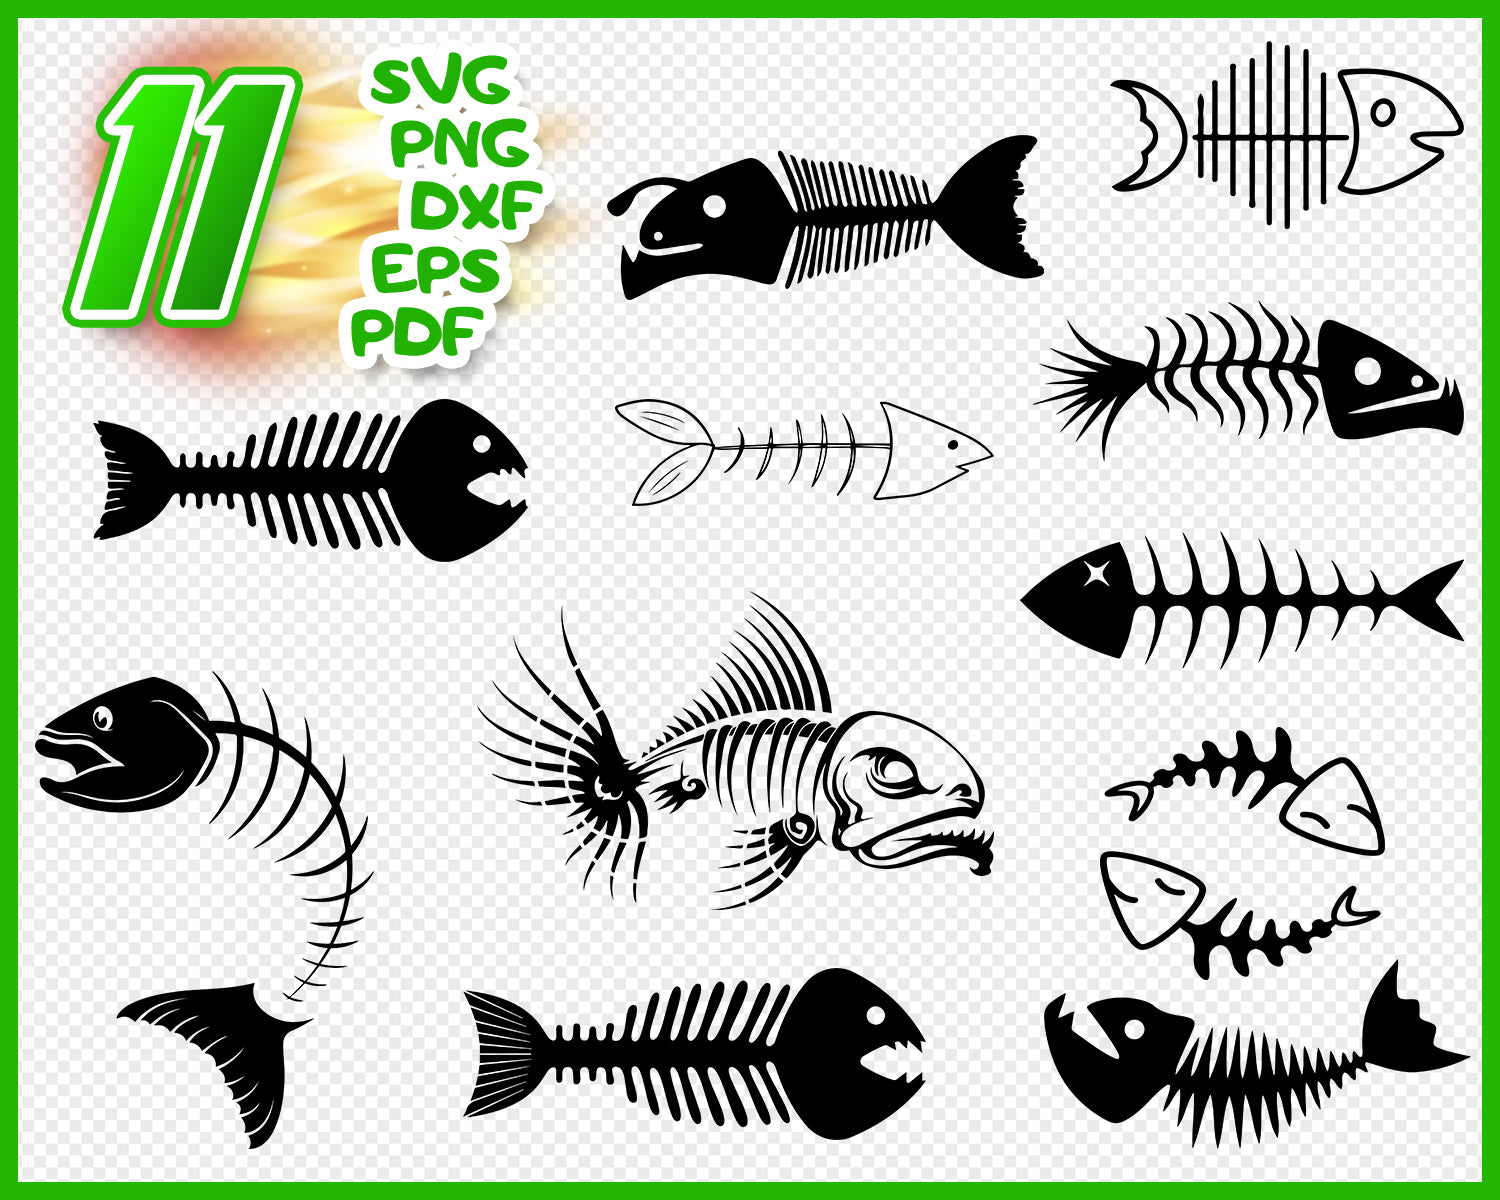 Download Angry Fish Skeleton Logo Fishing Svg Eps Png Dxf Vector Cutting Files Instant Download For Cricut Silhouette Cameo Cutter Plotter Digital Art Collectibles Vadel Com